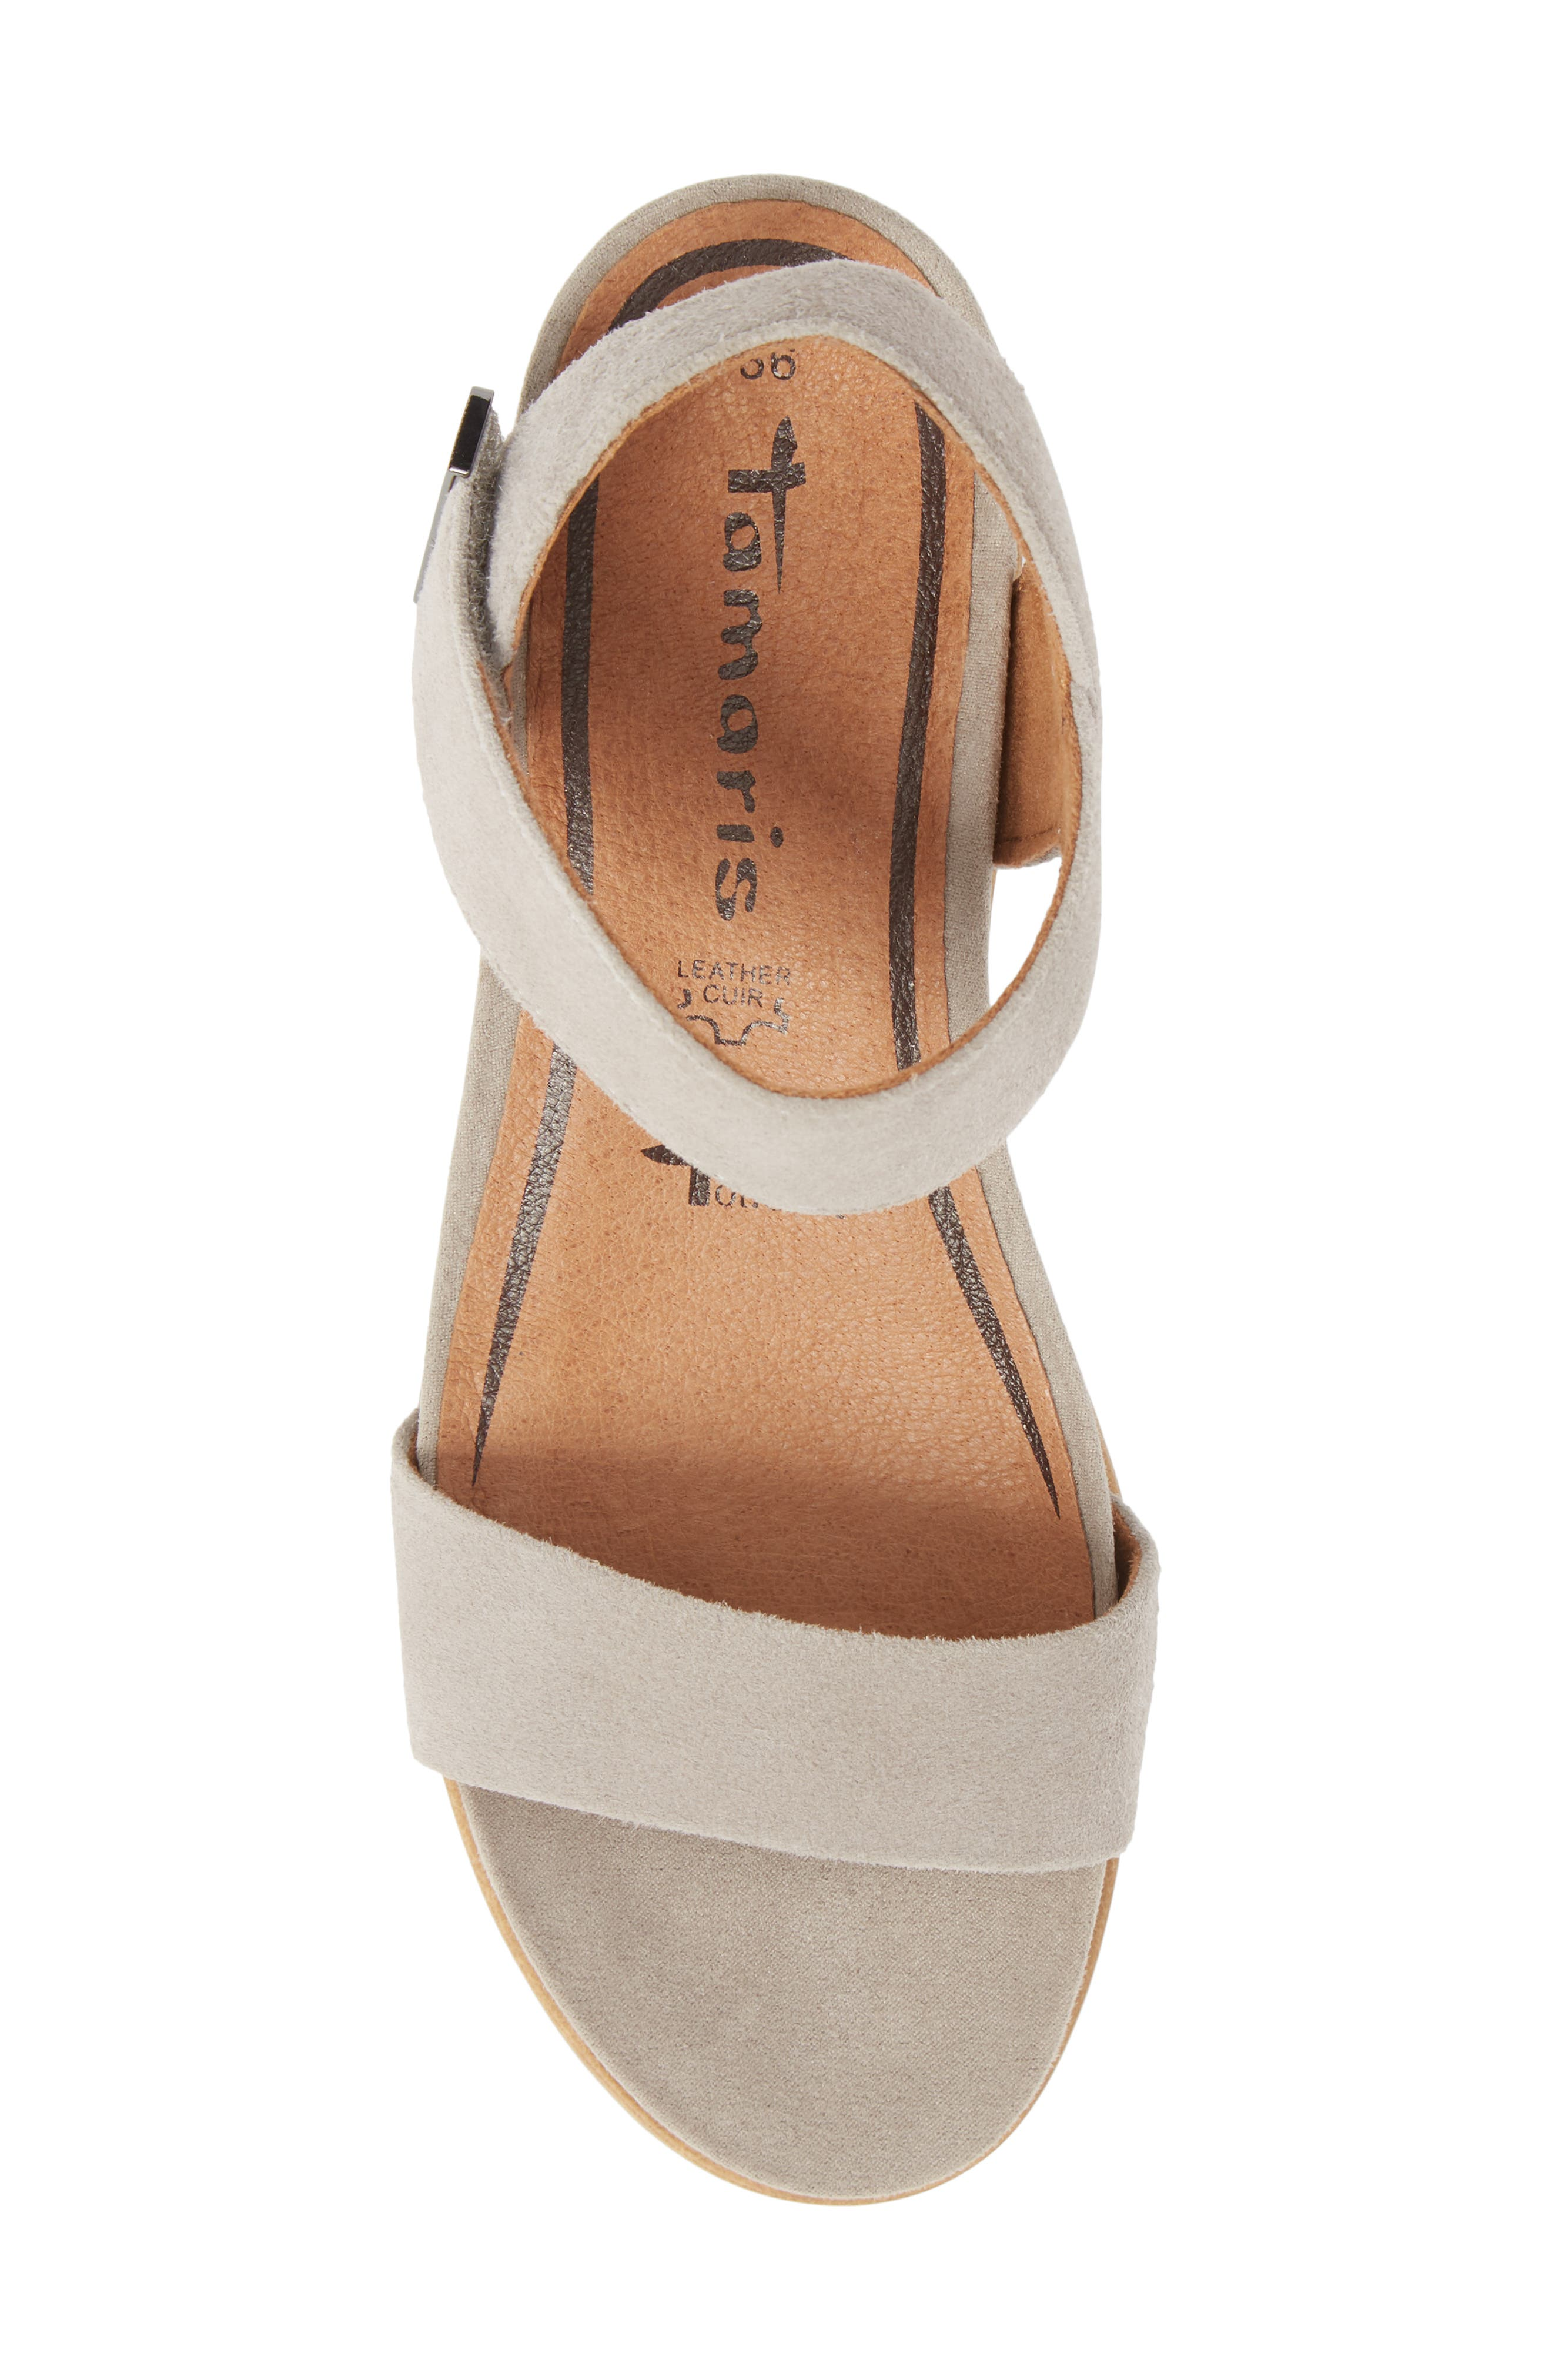 Cory Wedge Sandal,                             Alternate thumbnail 5, color,                             Cloud Suede